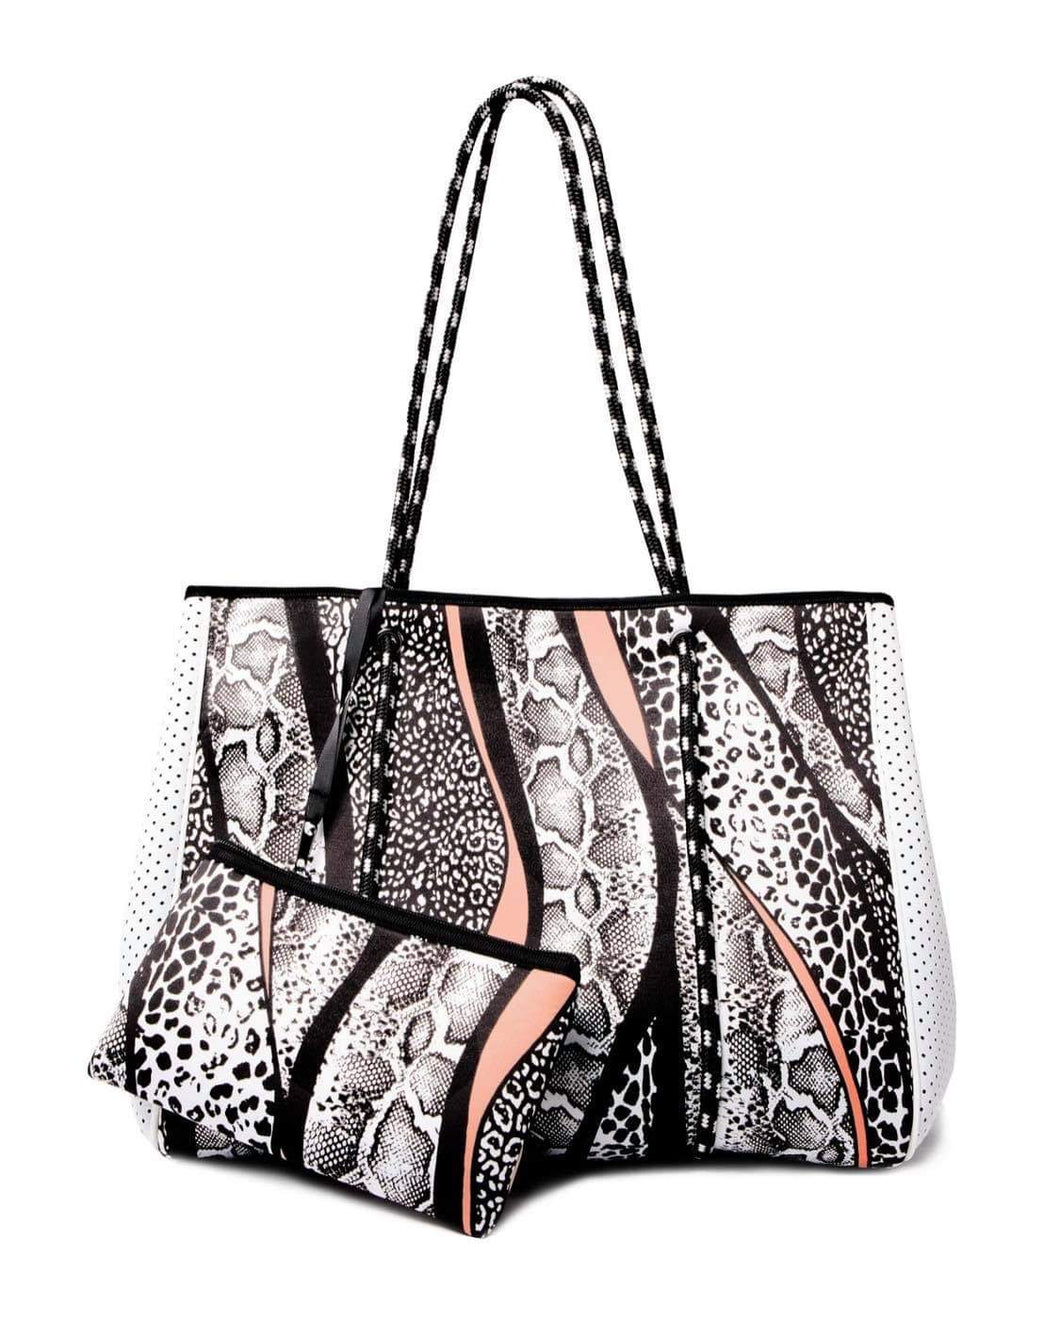 Neoprene Animal Print Tote Bag